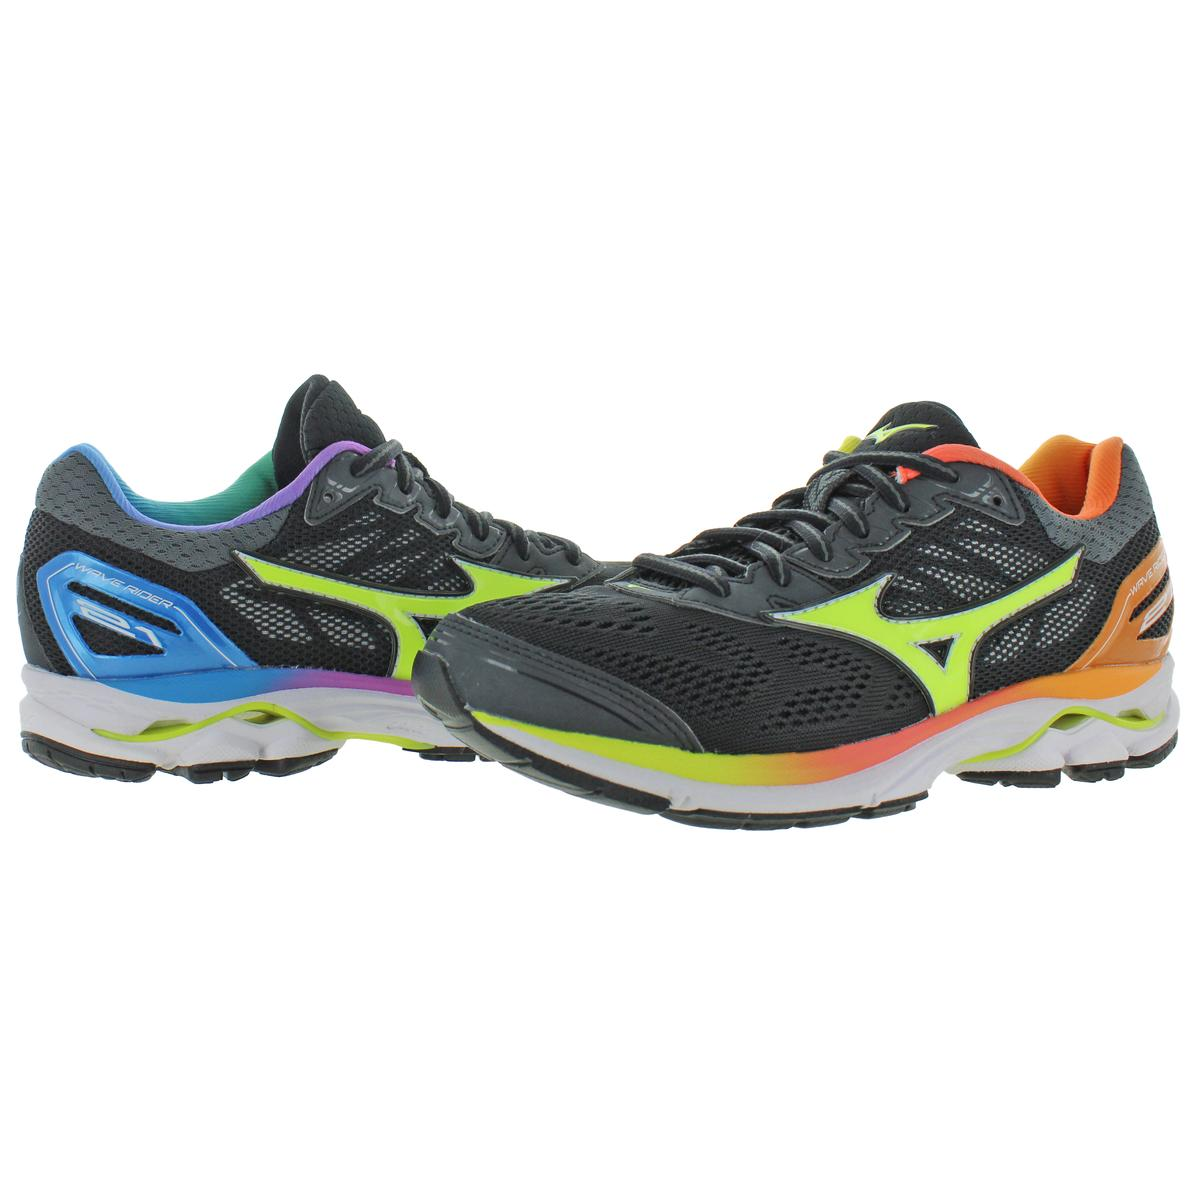 Mizuno-Womens-Wave-Rider-21-Trainer-Low-Top-Running-Shoes-Sneakers-BHFO-4647 thumbnail 3